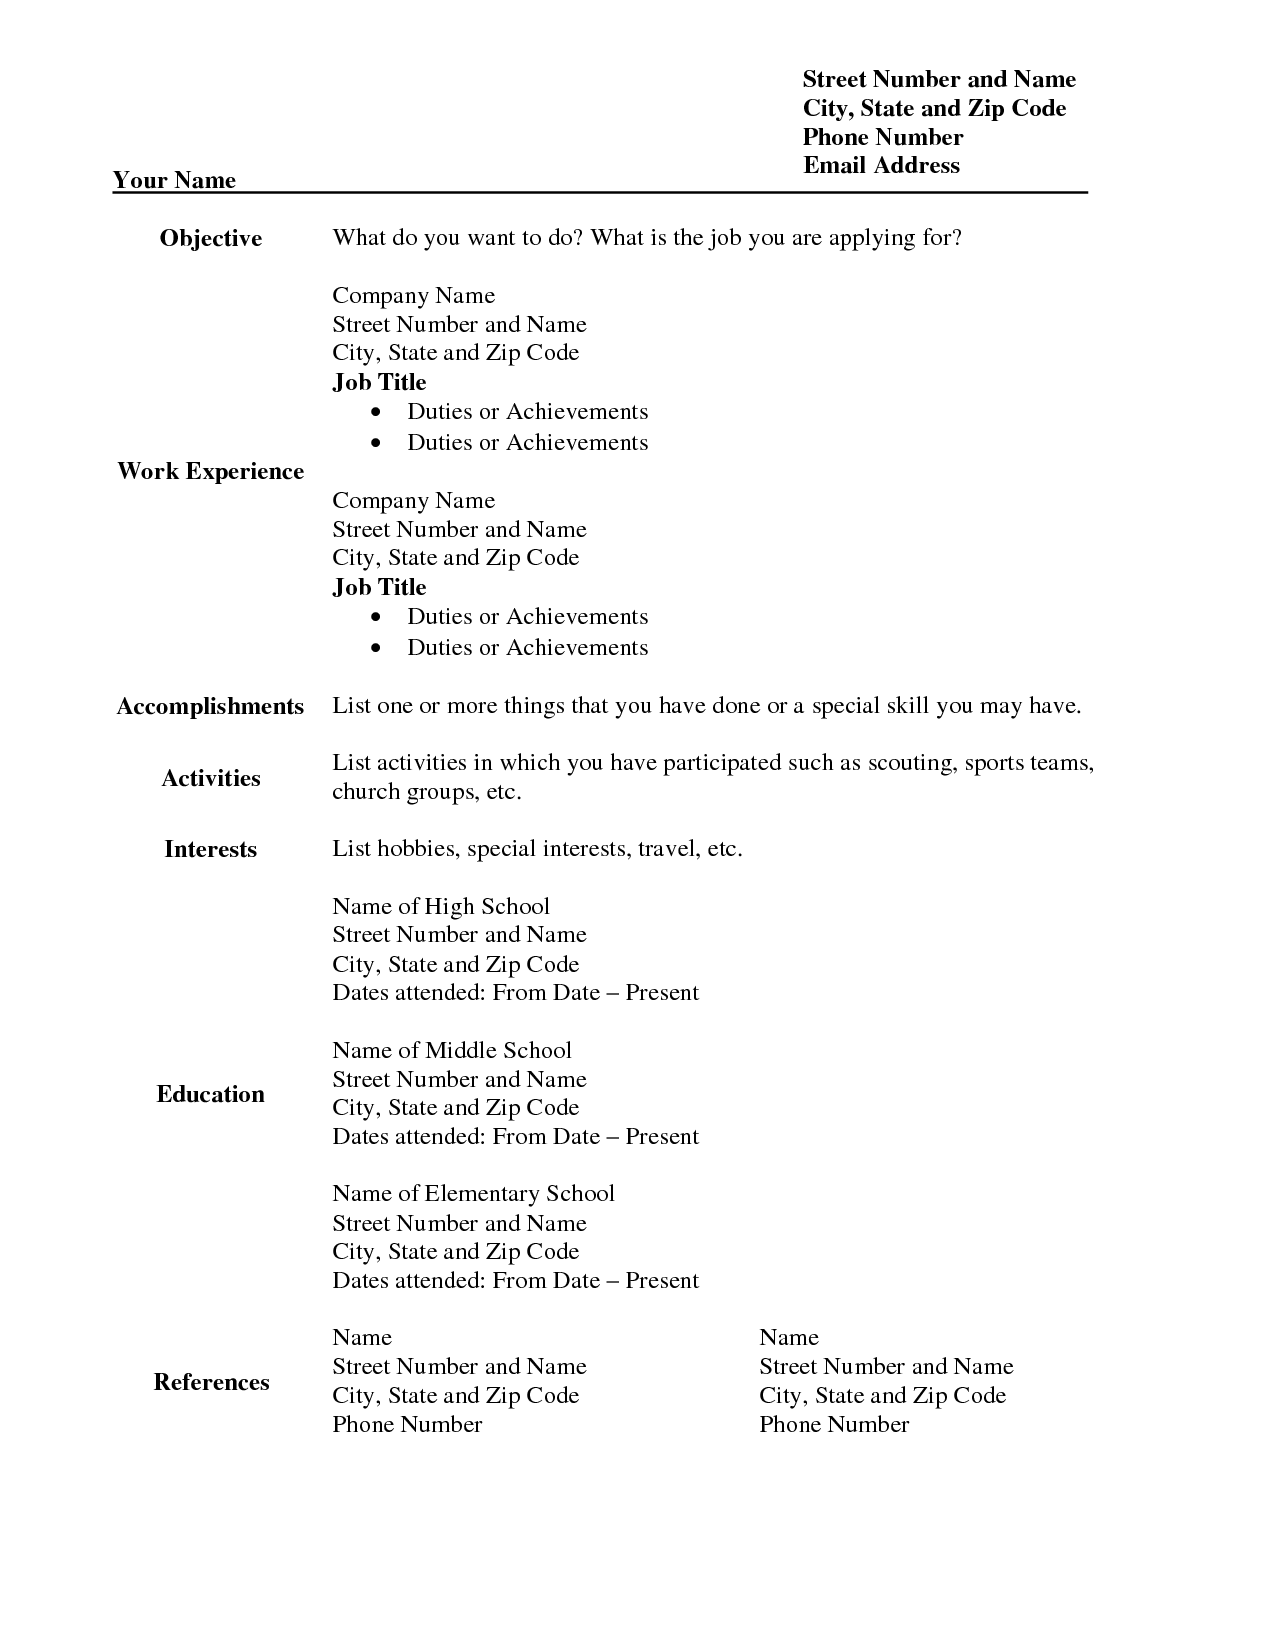 Download Free Blank Resume Form Template